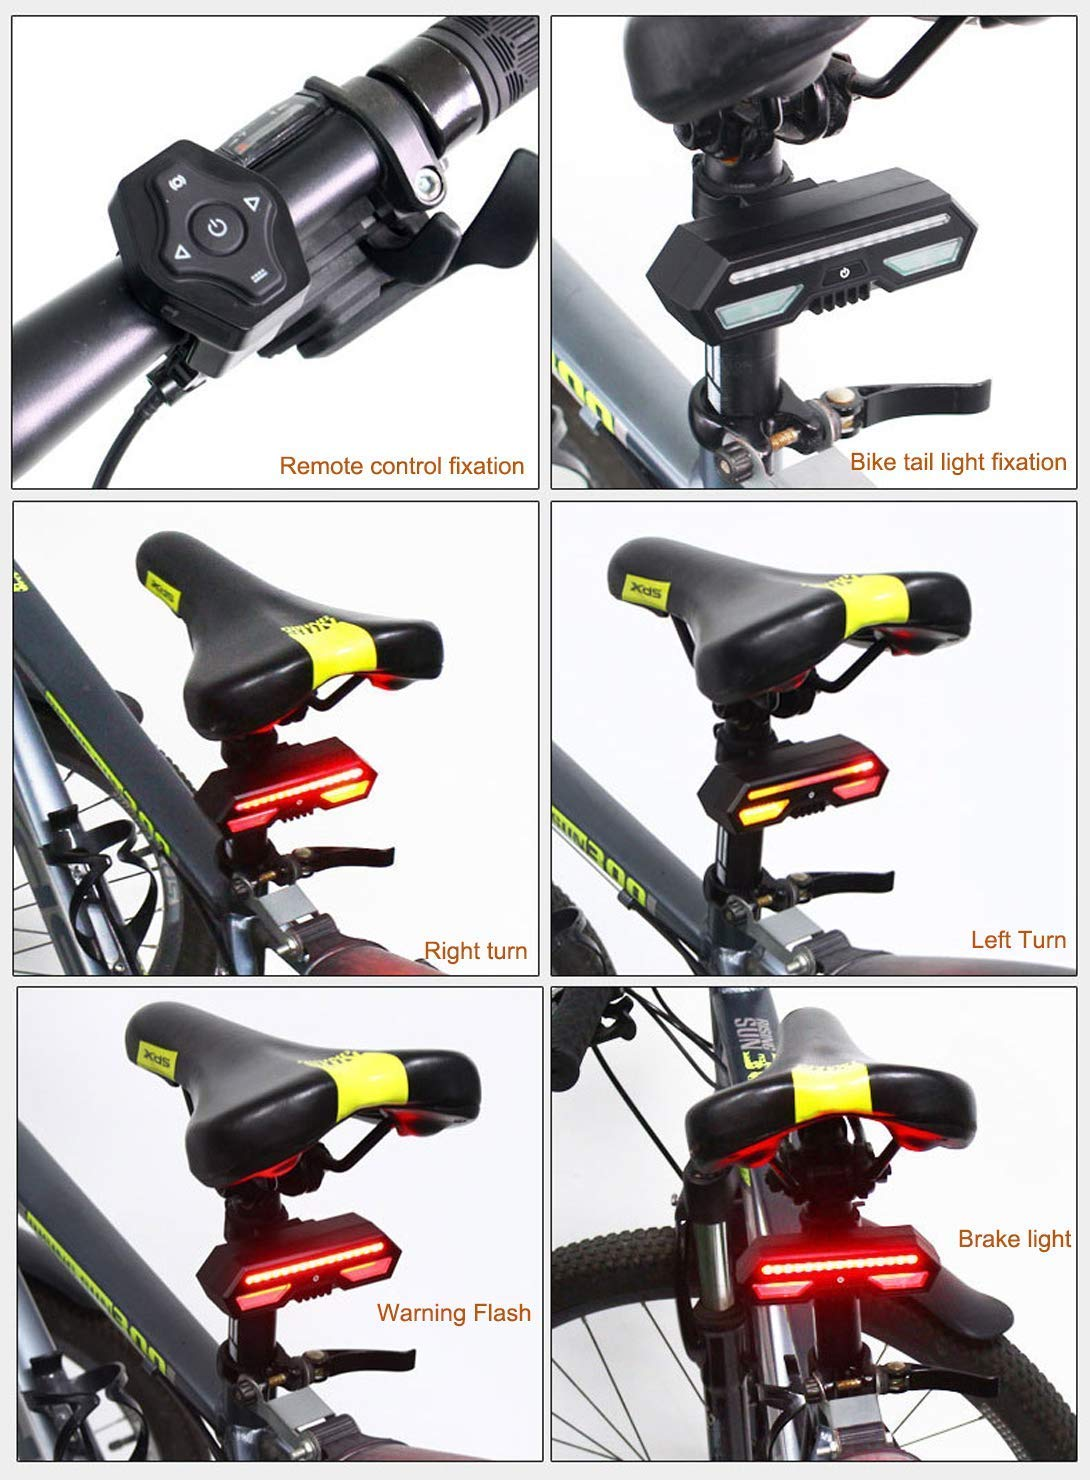 Safety Warning Bike Brake Lights and Flashing Lights Waterproof IPX4 Sanwotech Ultra Bright Bike Rear Light Wireless Remote Control USB Rechargeable Bicycle Taillight Bike Tail Light with Turn Signals